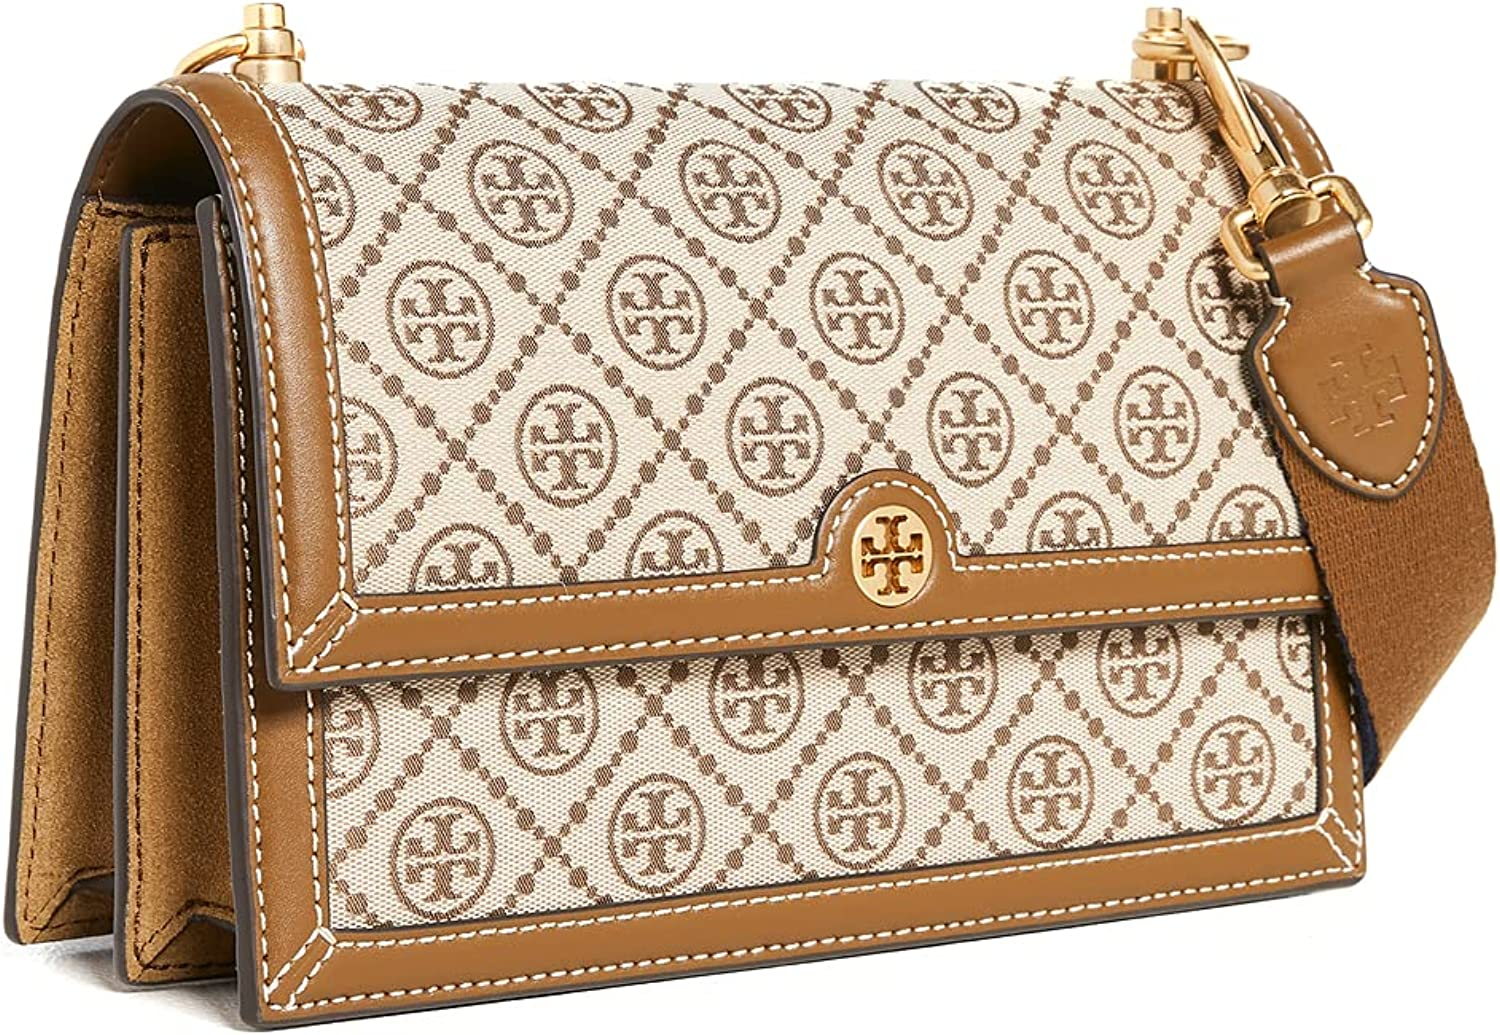 Tory Burch Women's T Bag Spring new work Jacquard Monogram Limited Special Price Shoulder